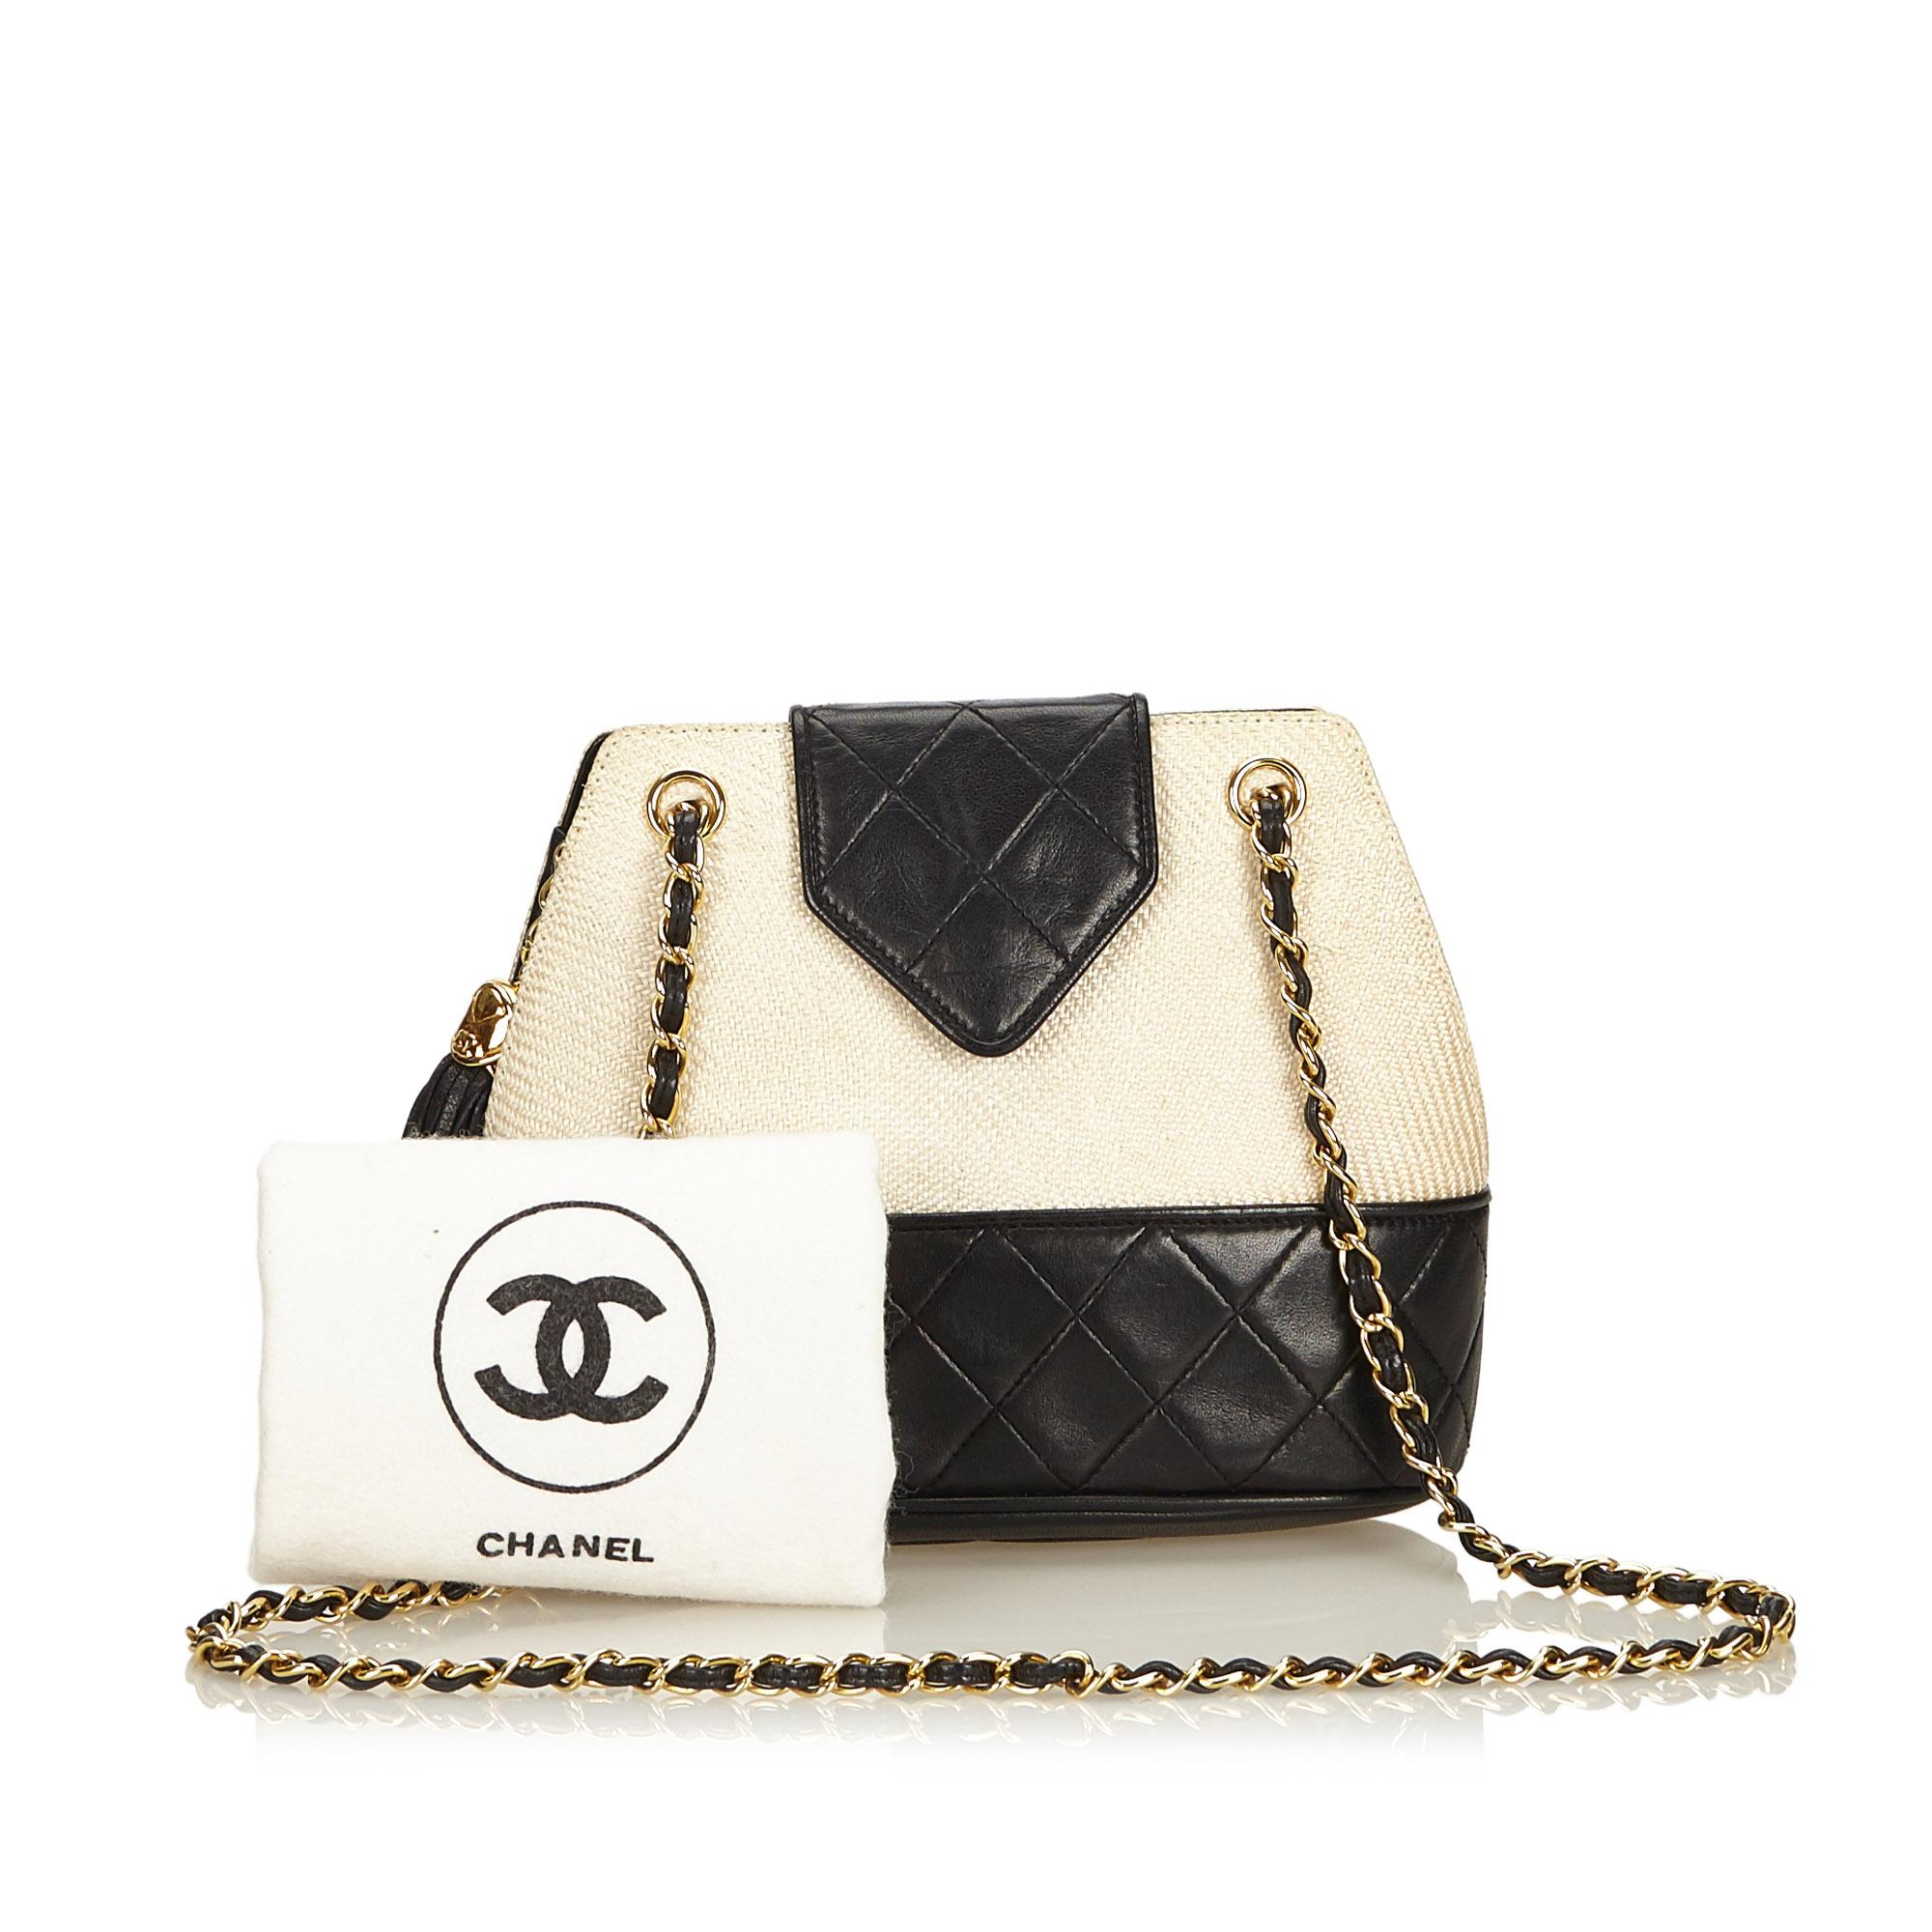 df632bfdc2e30b Chanel White Woven Raffia Chain Shoulder Bag at 1stdibs